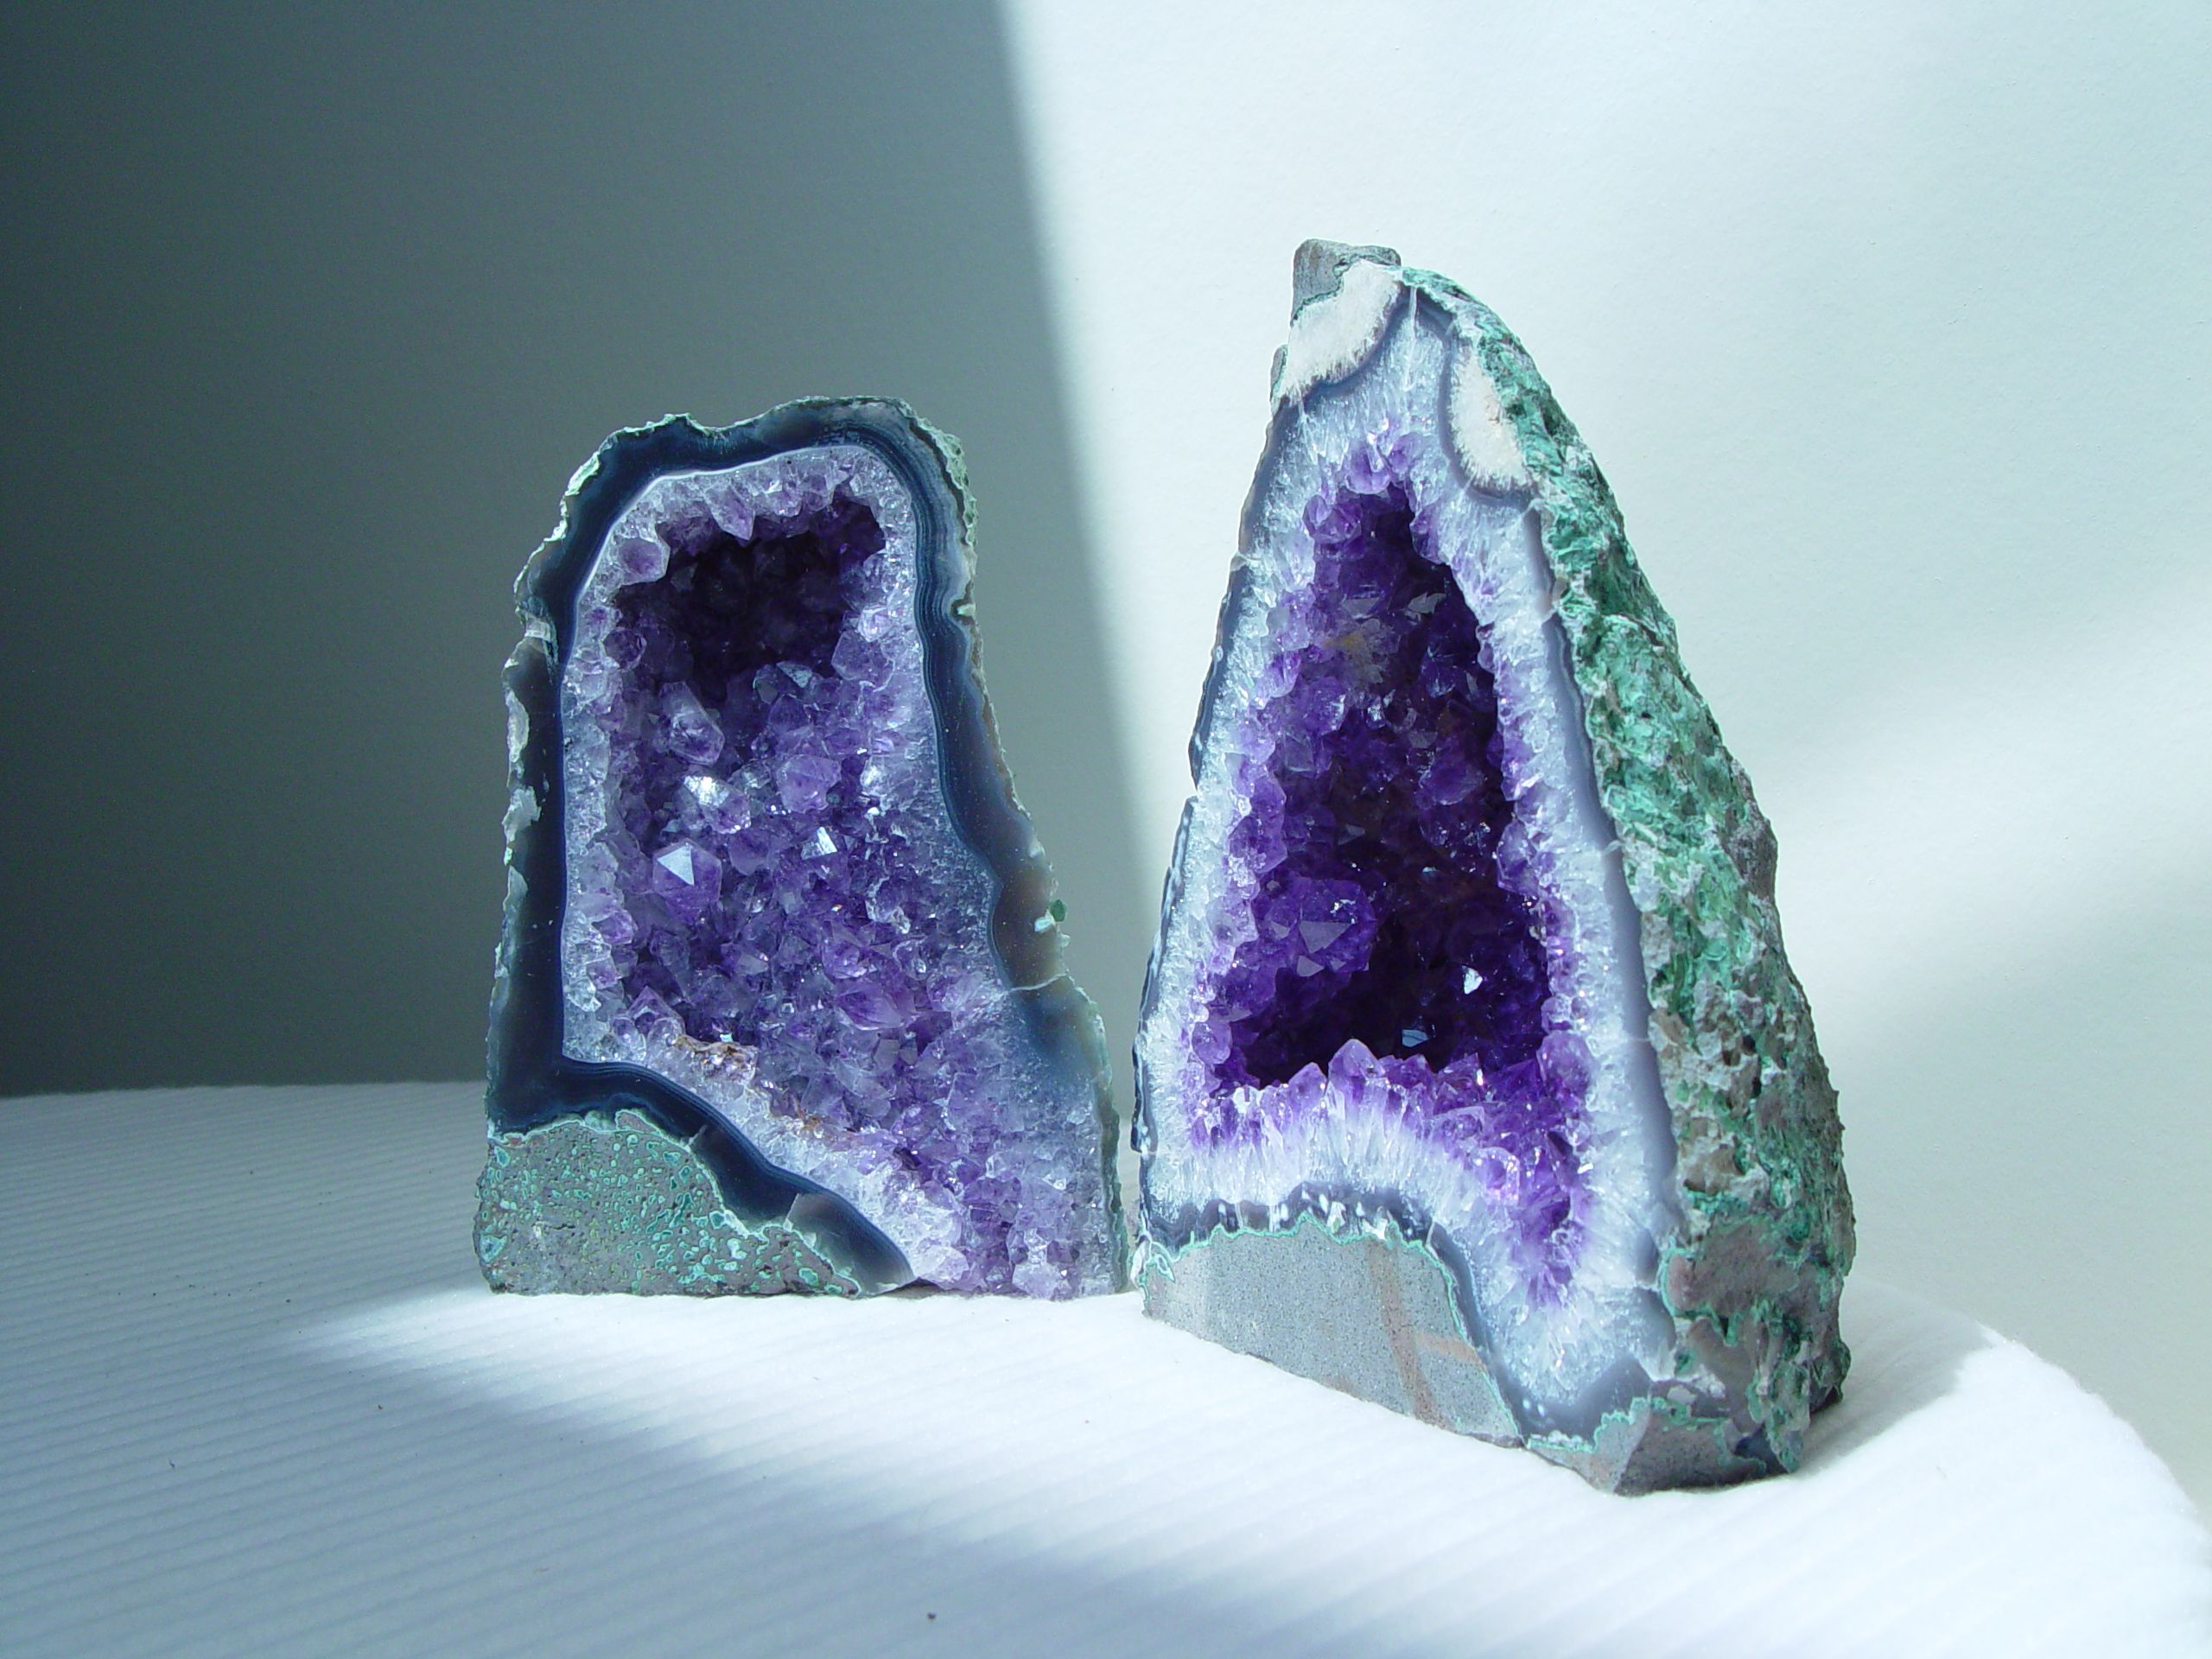 Decorative Quartz Rocks Manifest Large Unexpected Decorative Geodes And Crystals That Not